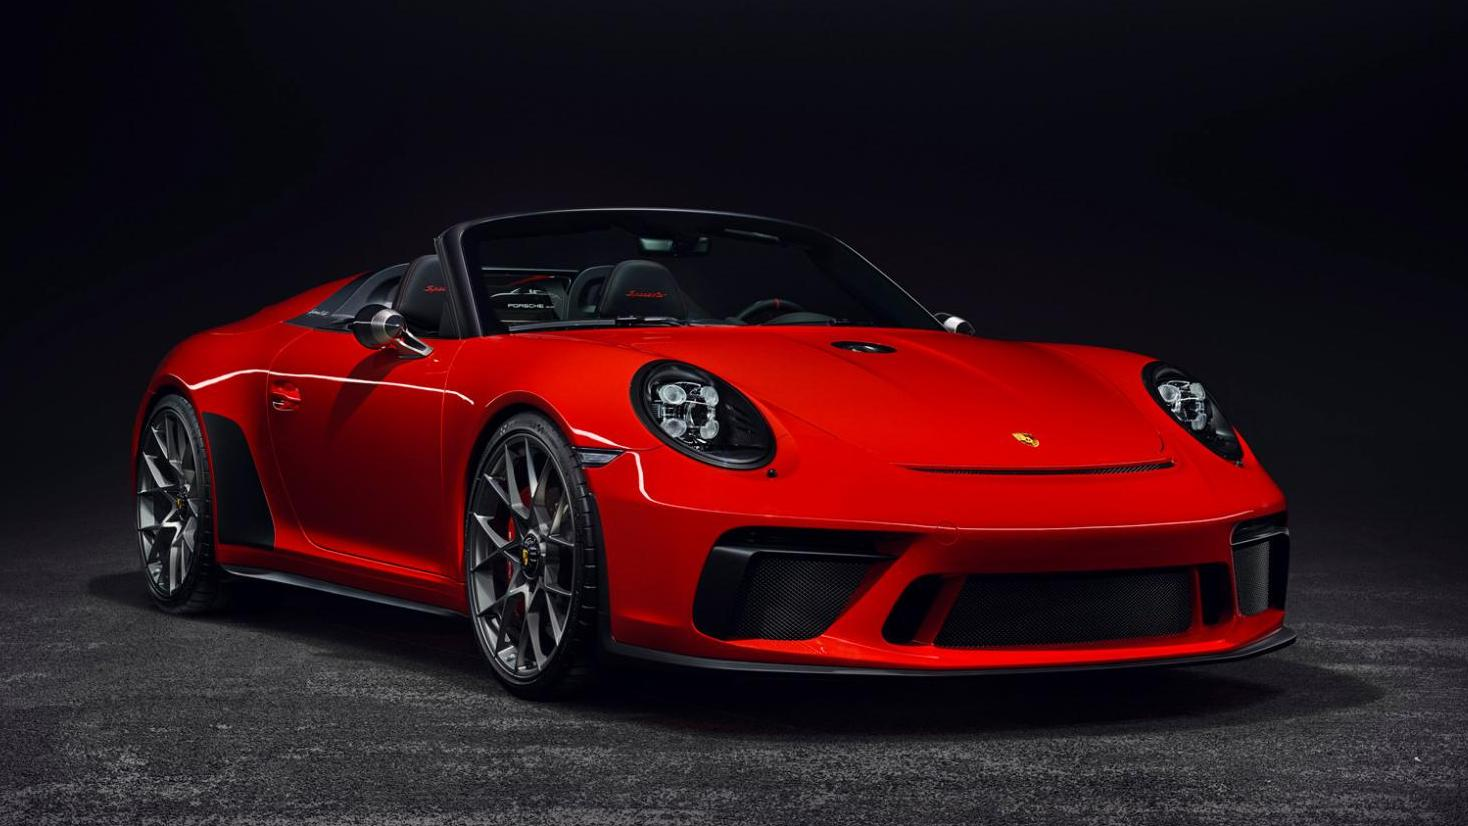 Porsche's incredible 500-hp 911 Speedster confirmed for production -